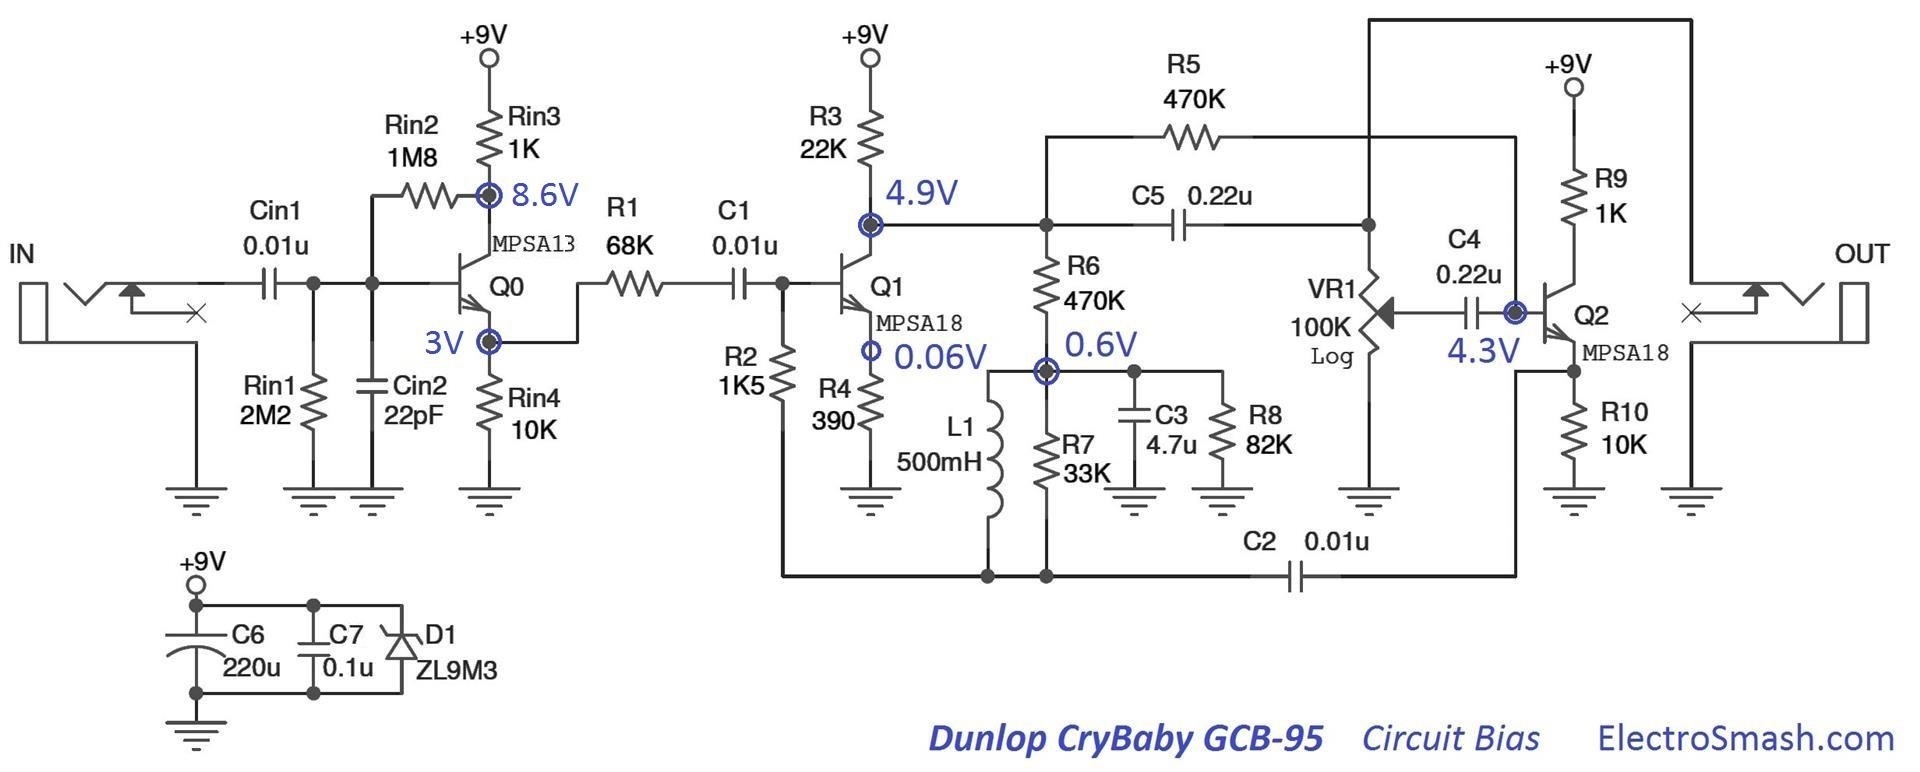 cry baby wah gcb 95 bias dunlop crybaby troubleshooting dunlop crybaby wiring diagram at webbmarketing.co